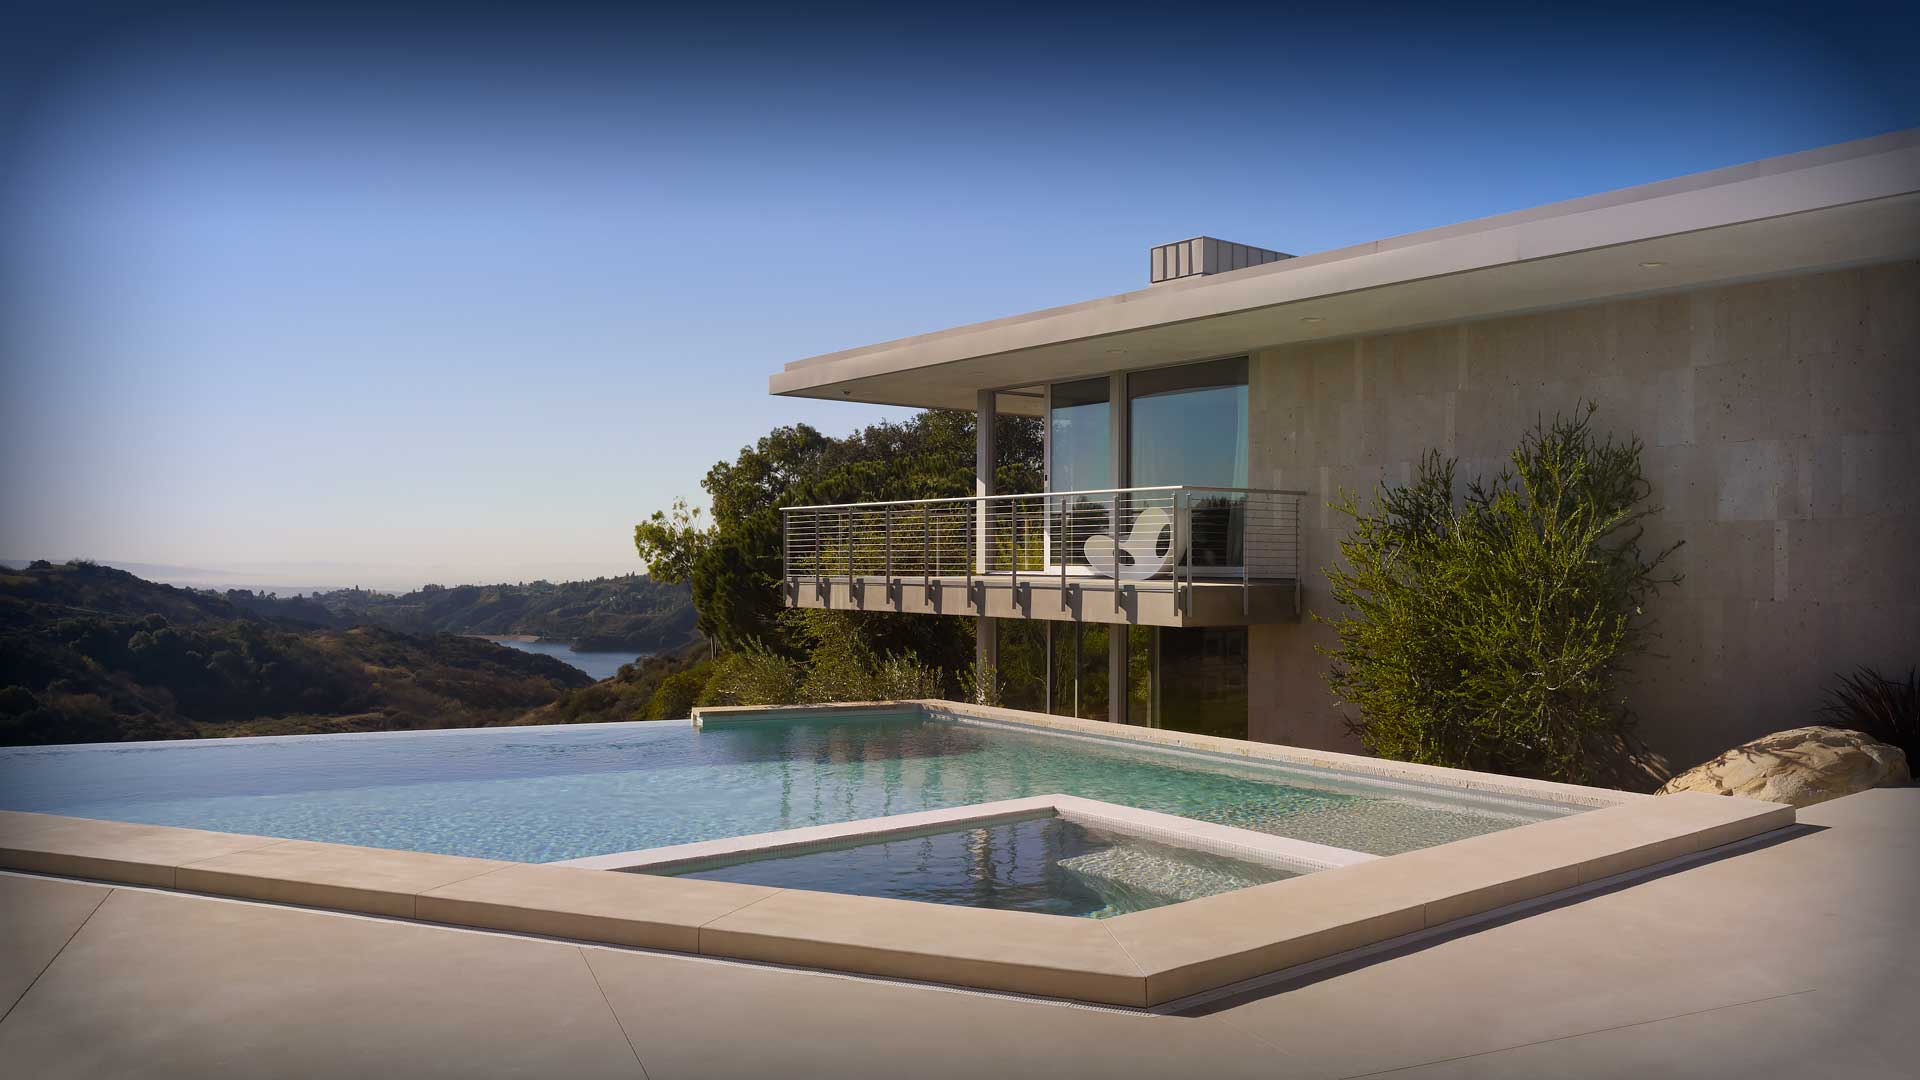 bel-air-house-1920×1080-11a